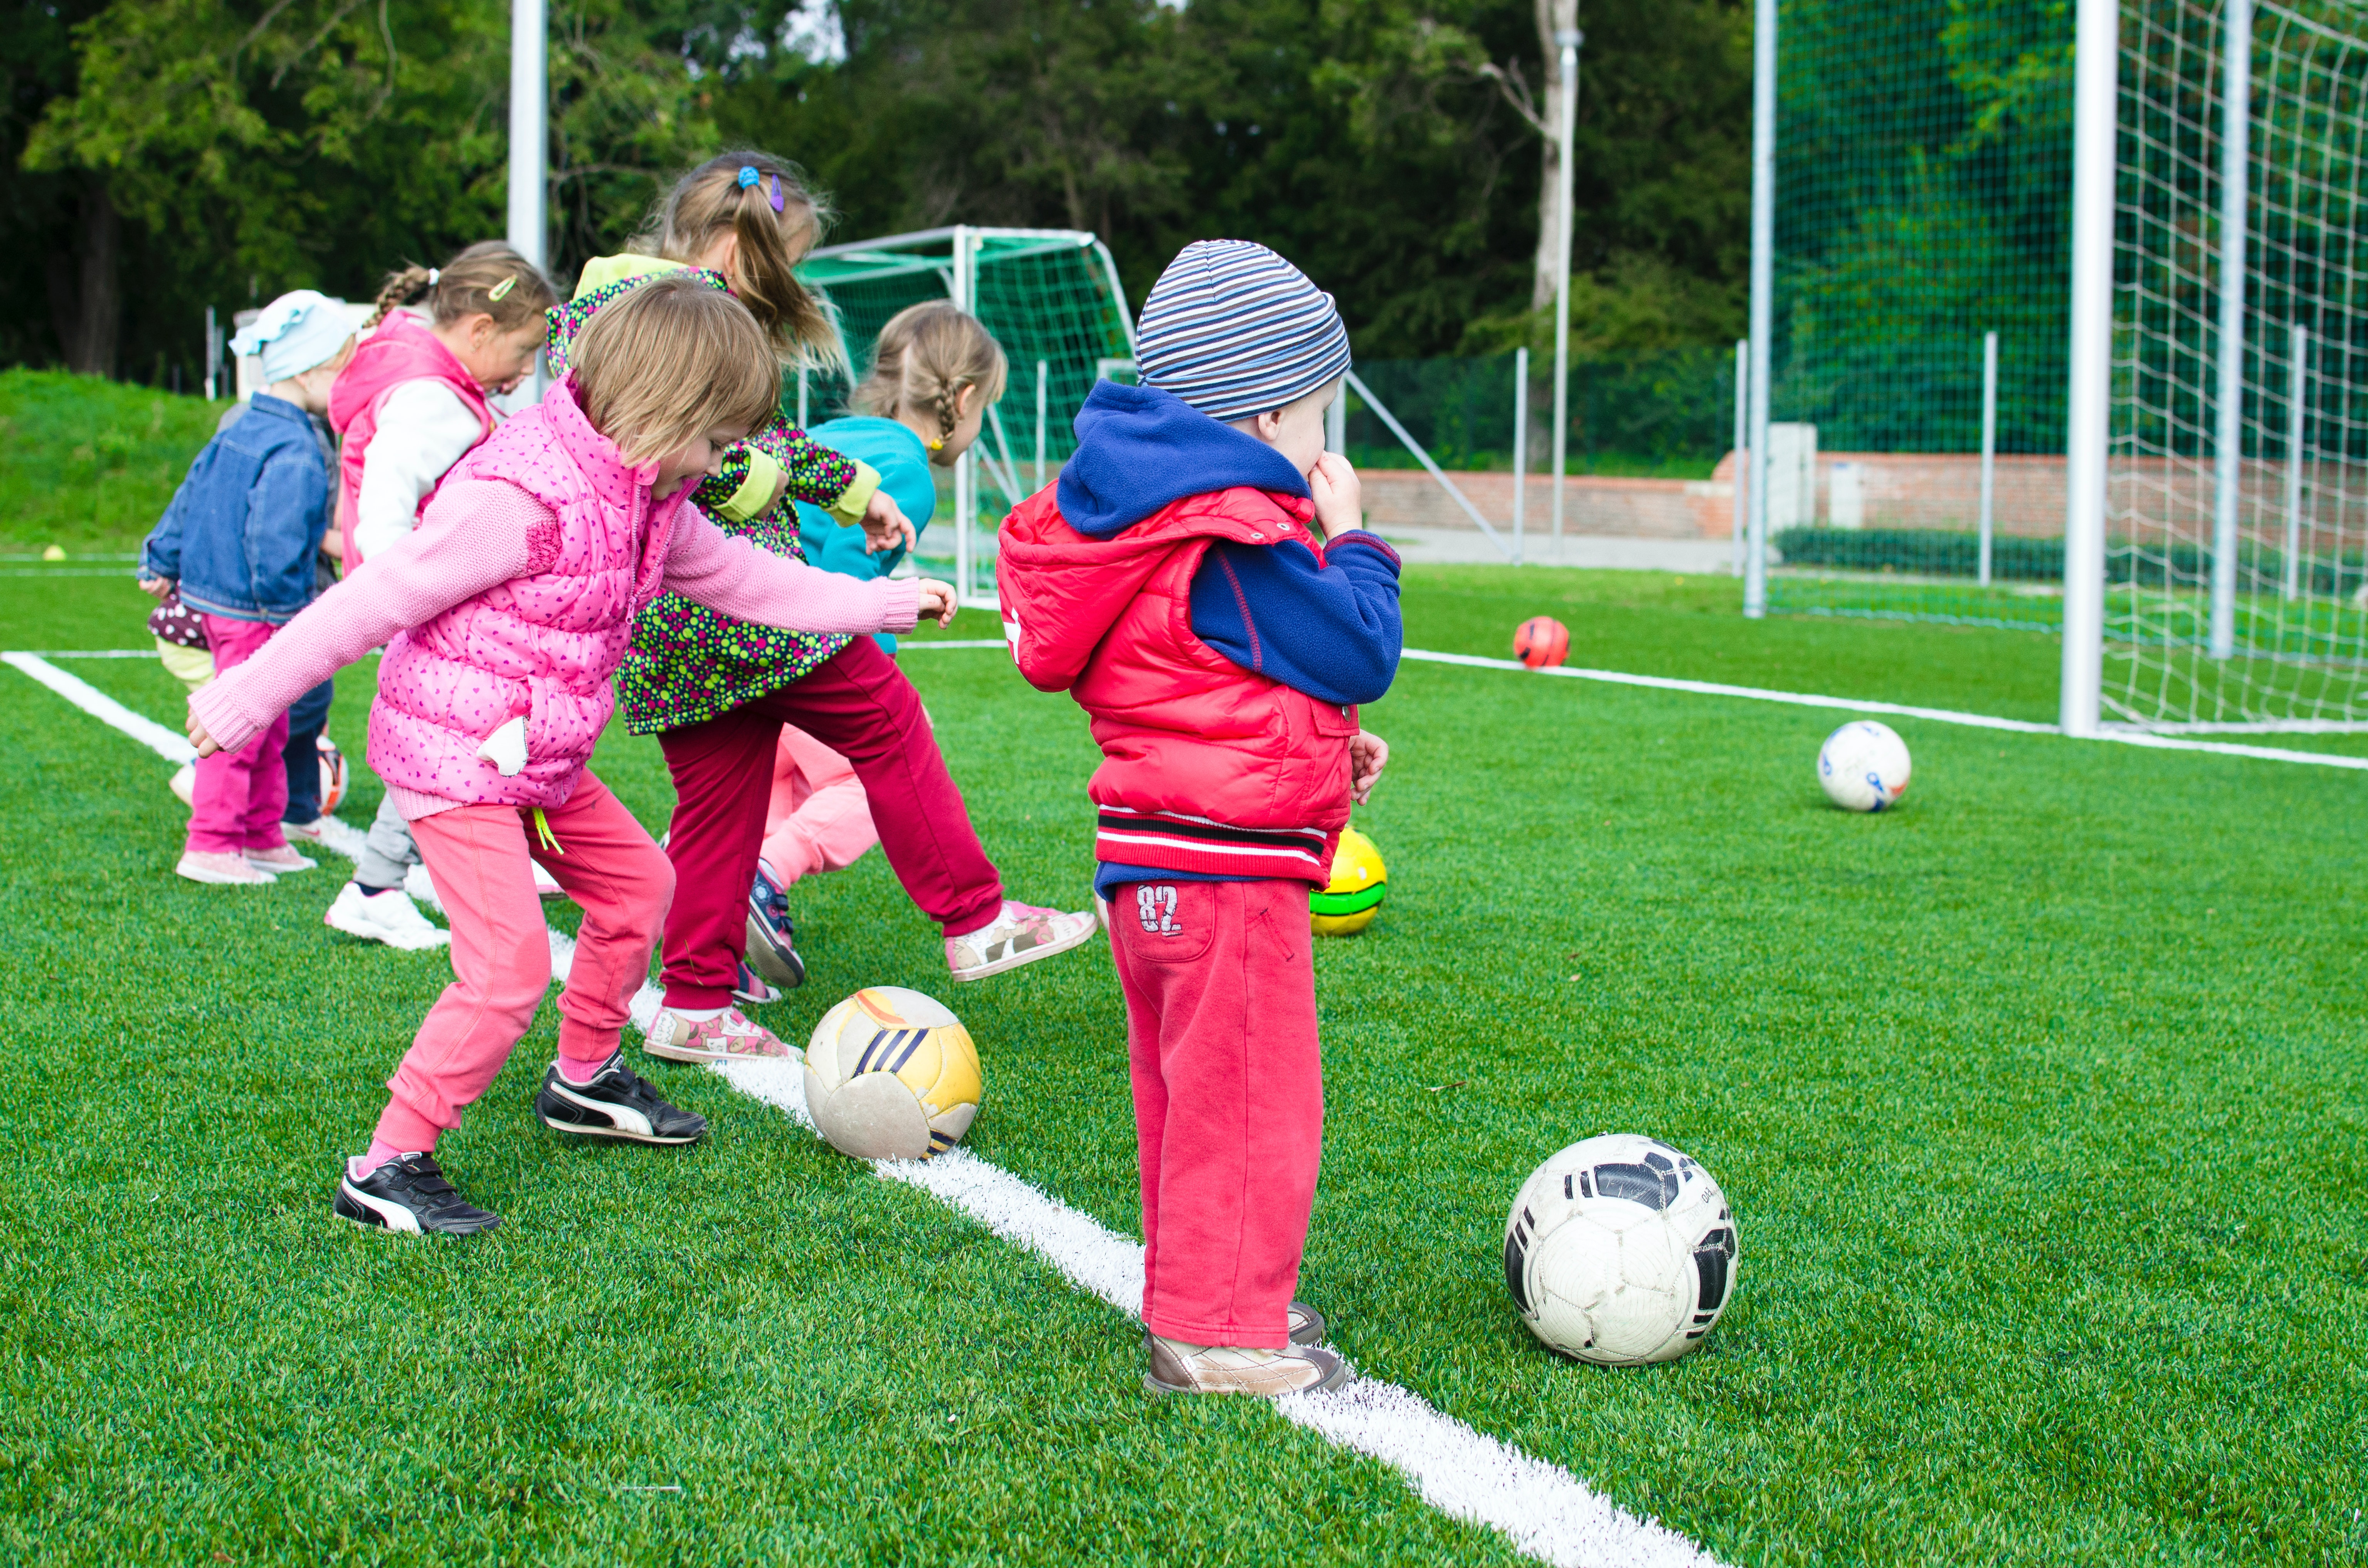 The blog post is about early specialization in sport, there it's appropriate to include a picture of kids kicking soccer balls